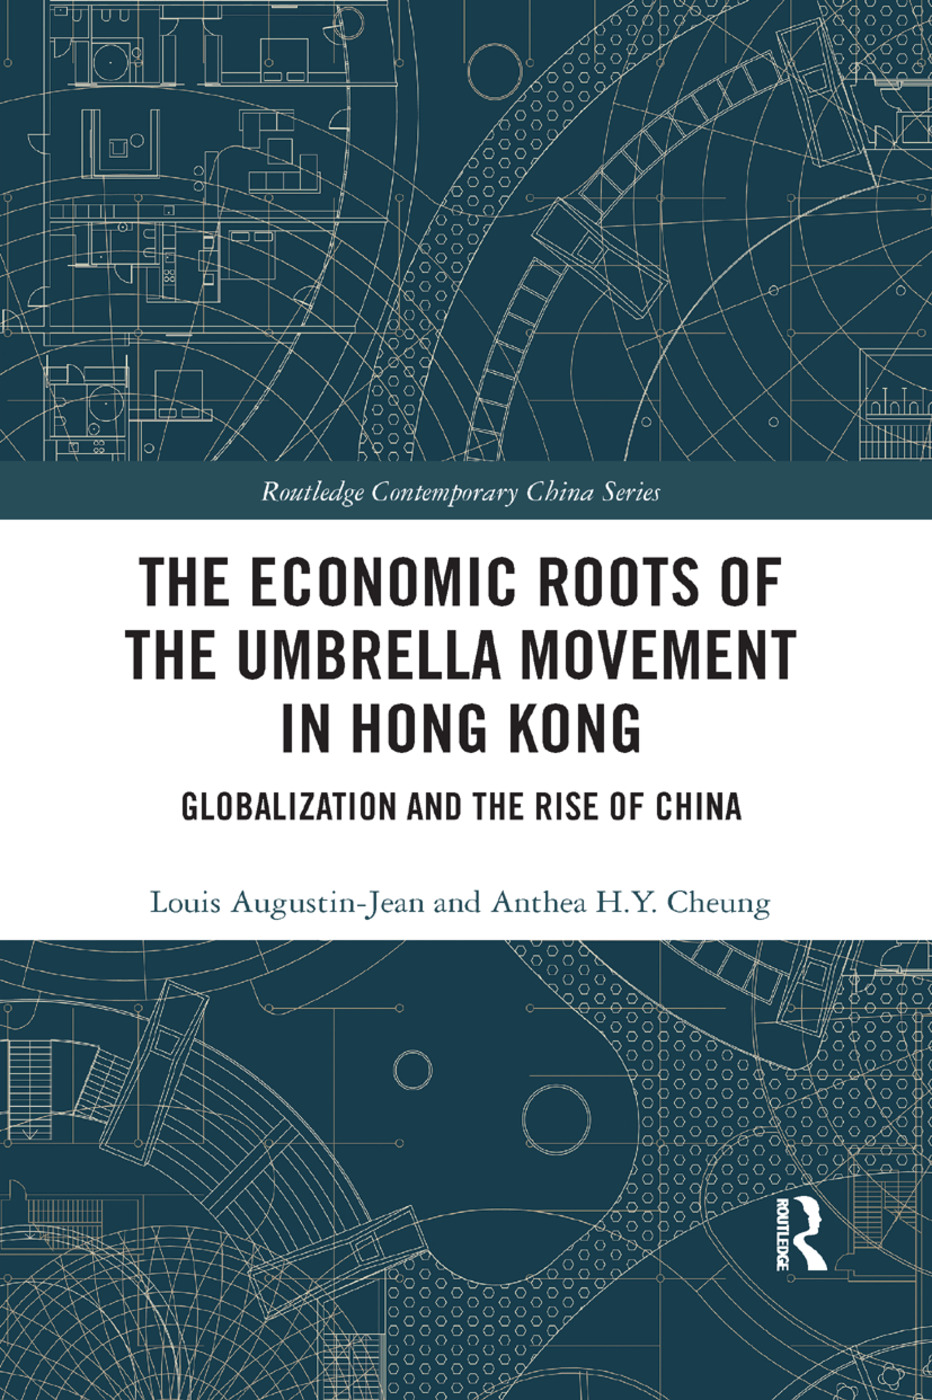 The Economic Roots of the Umbrella Movement in Hong Kong